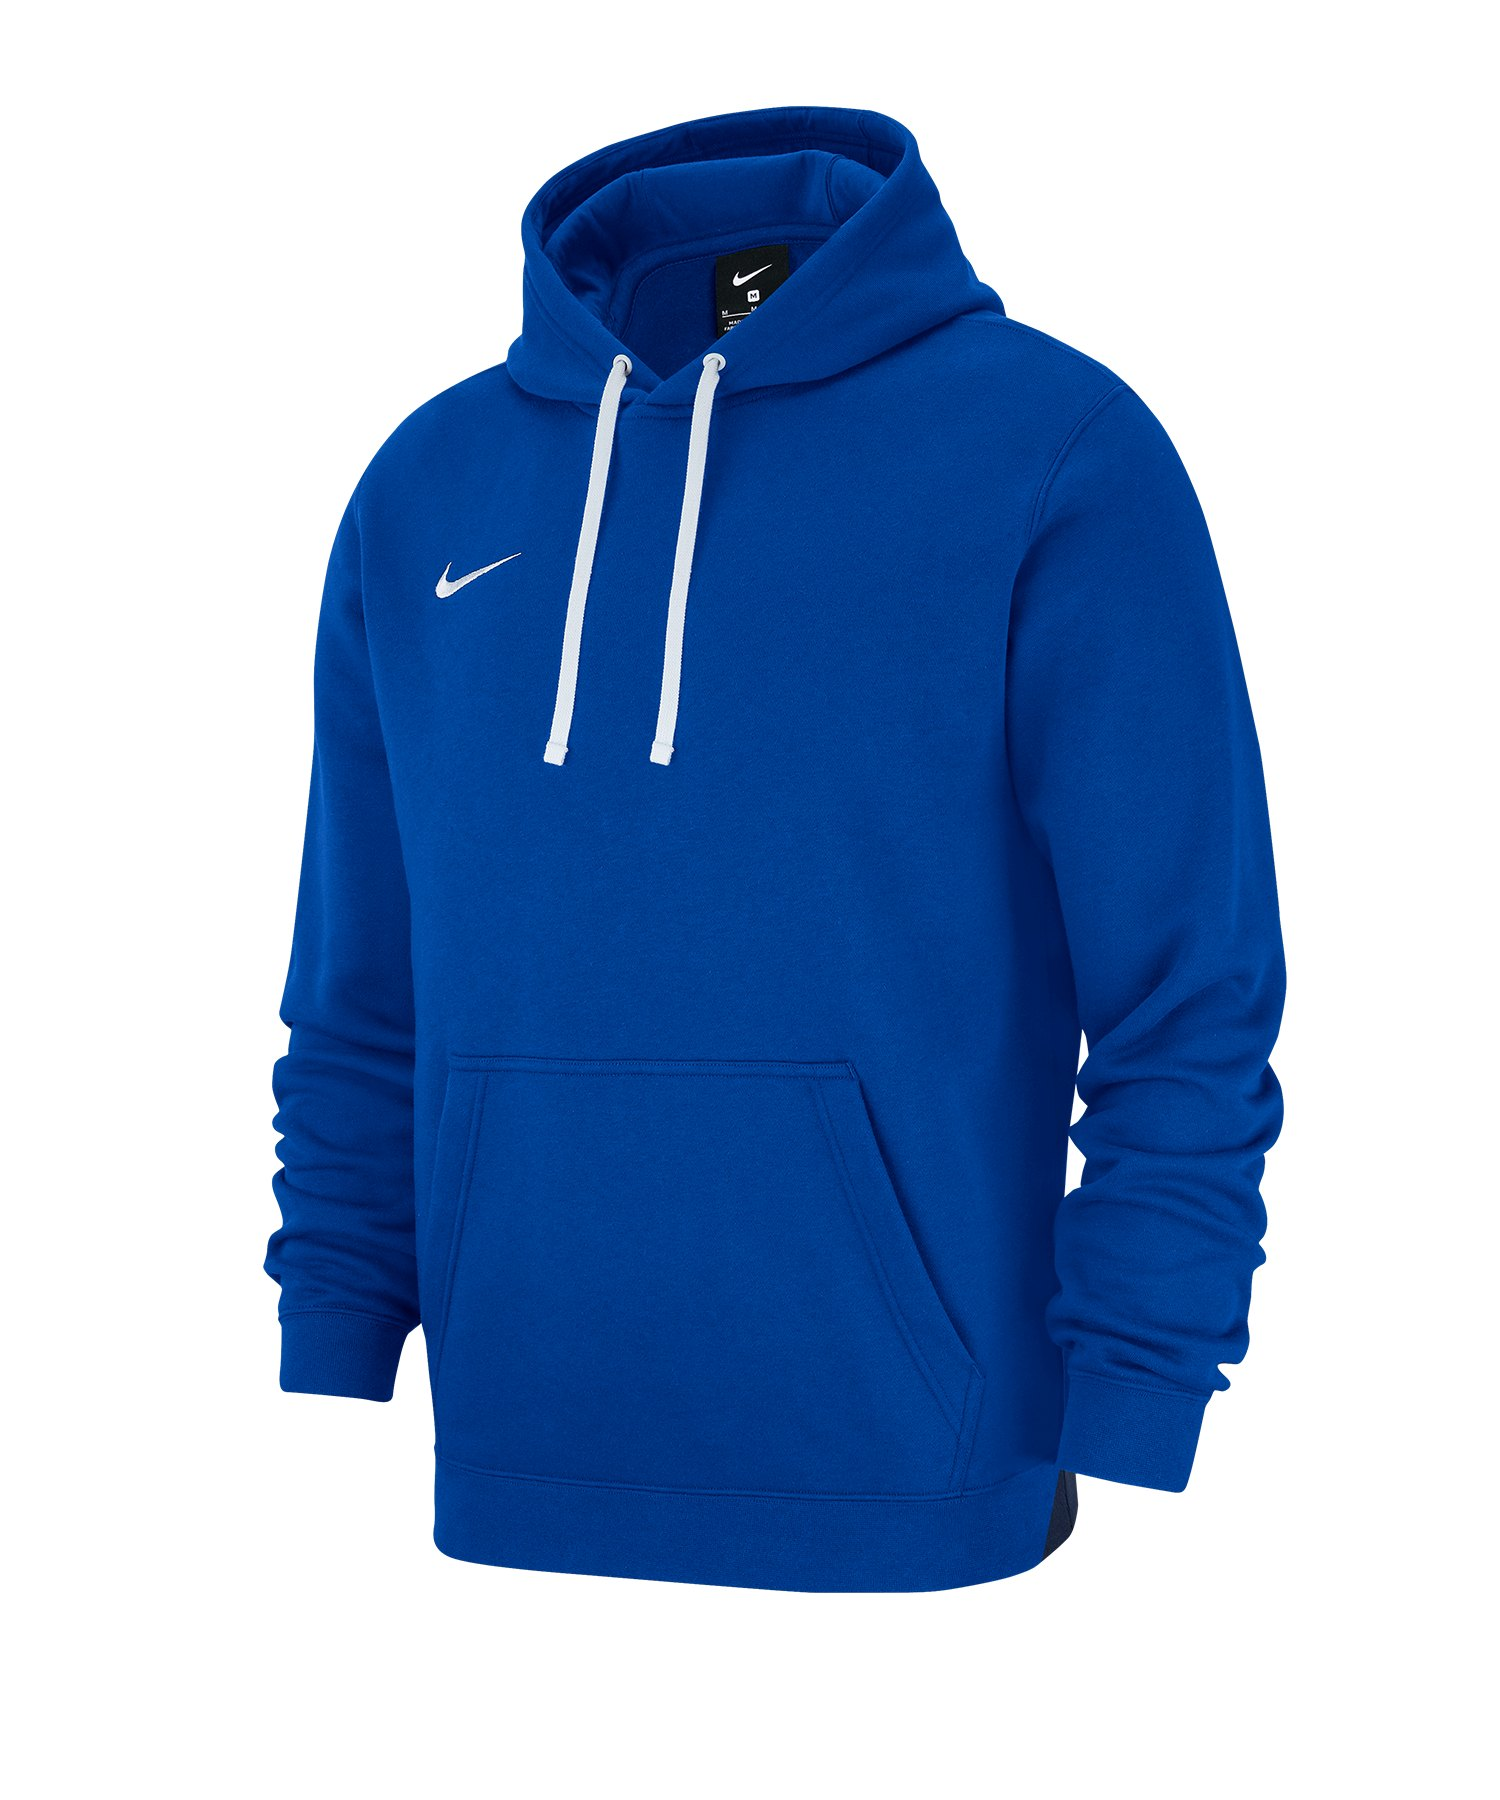 Nike Club 19 Fleece Hoody Blau F463 - blau